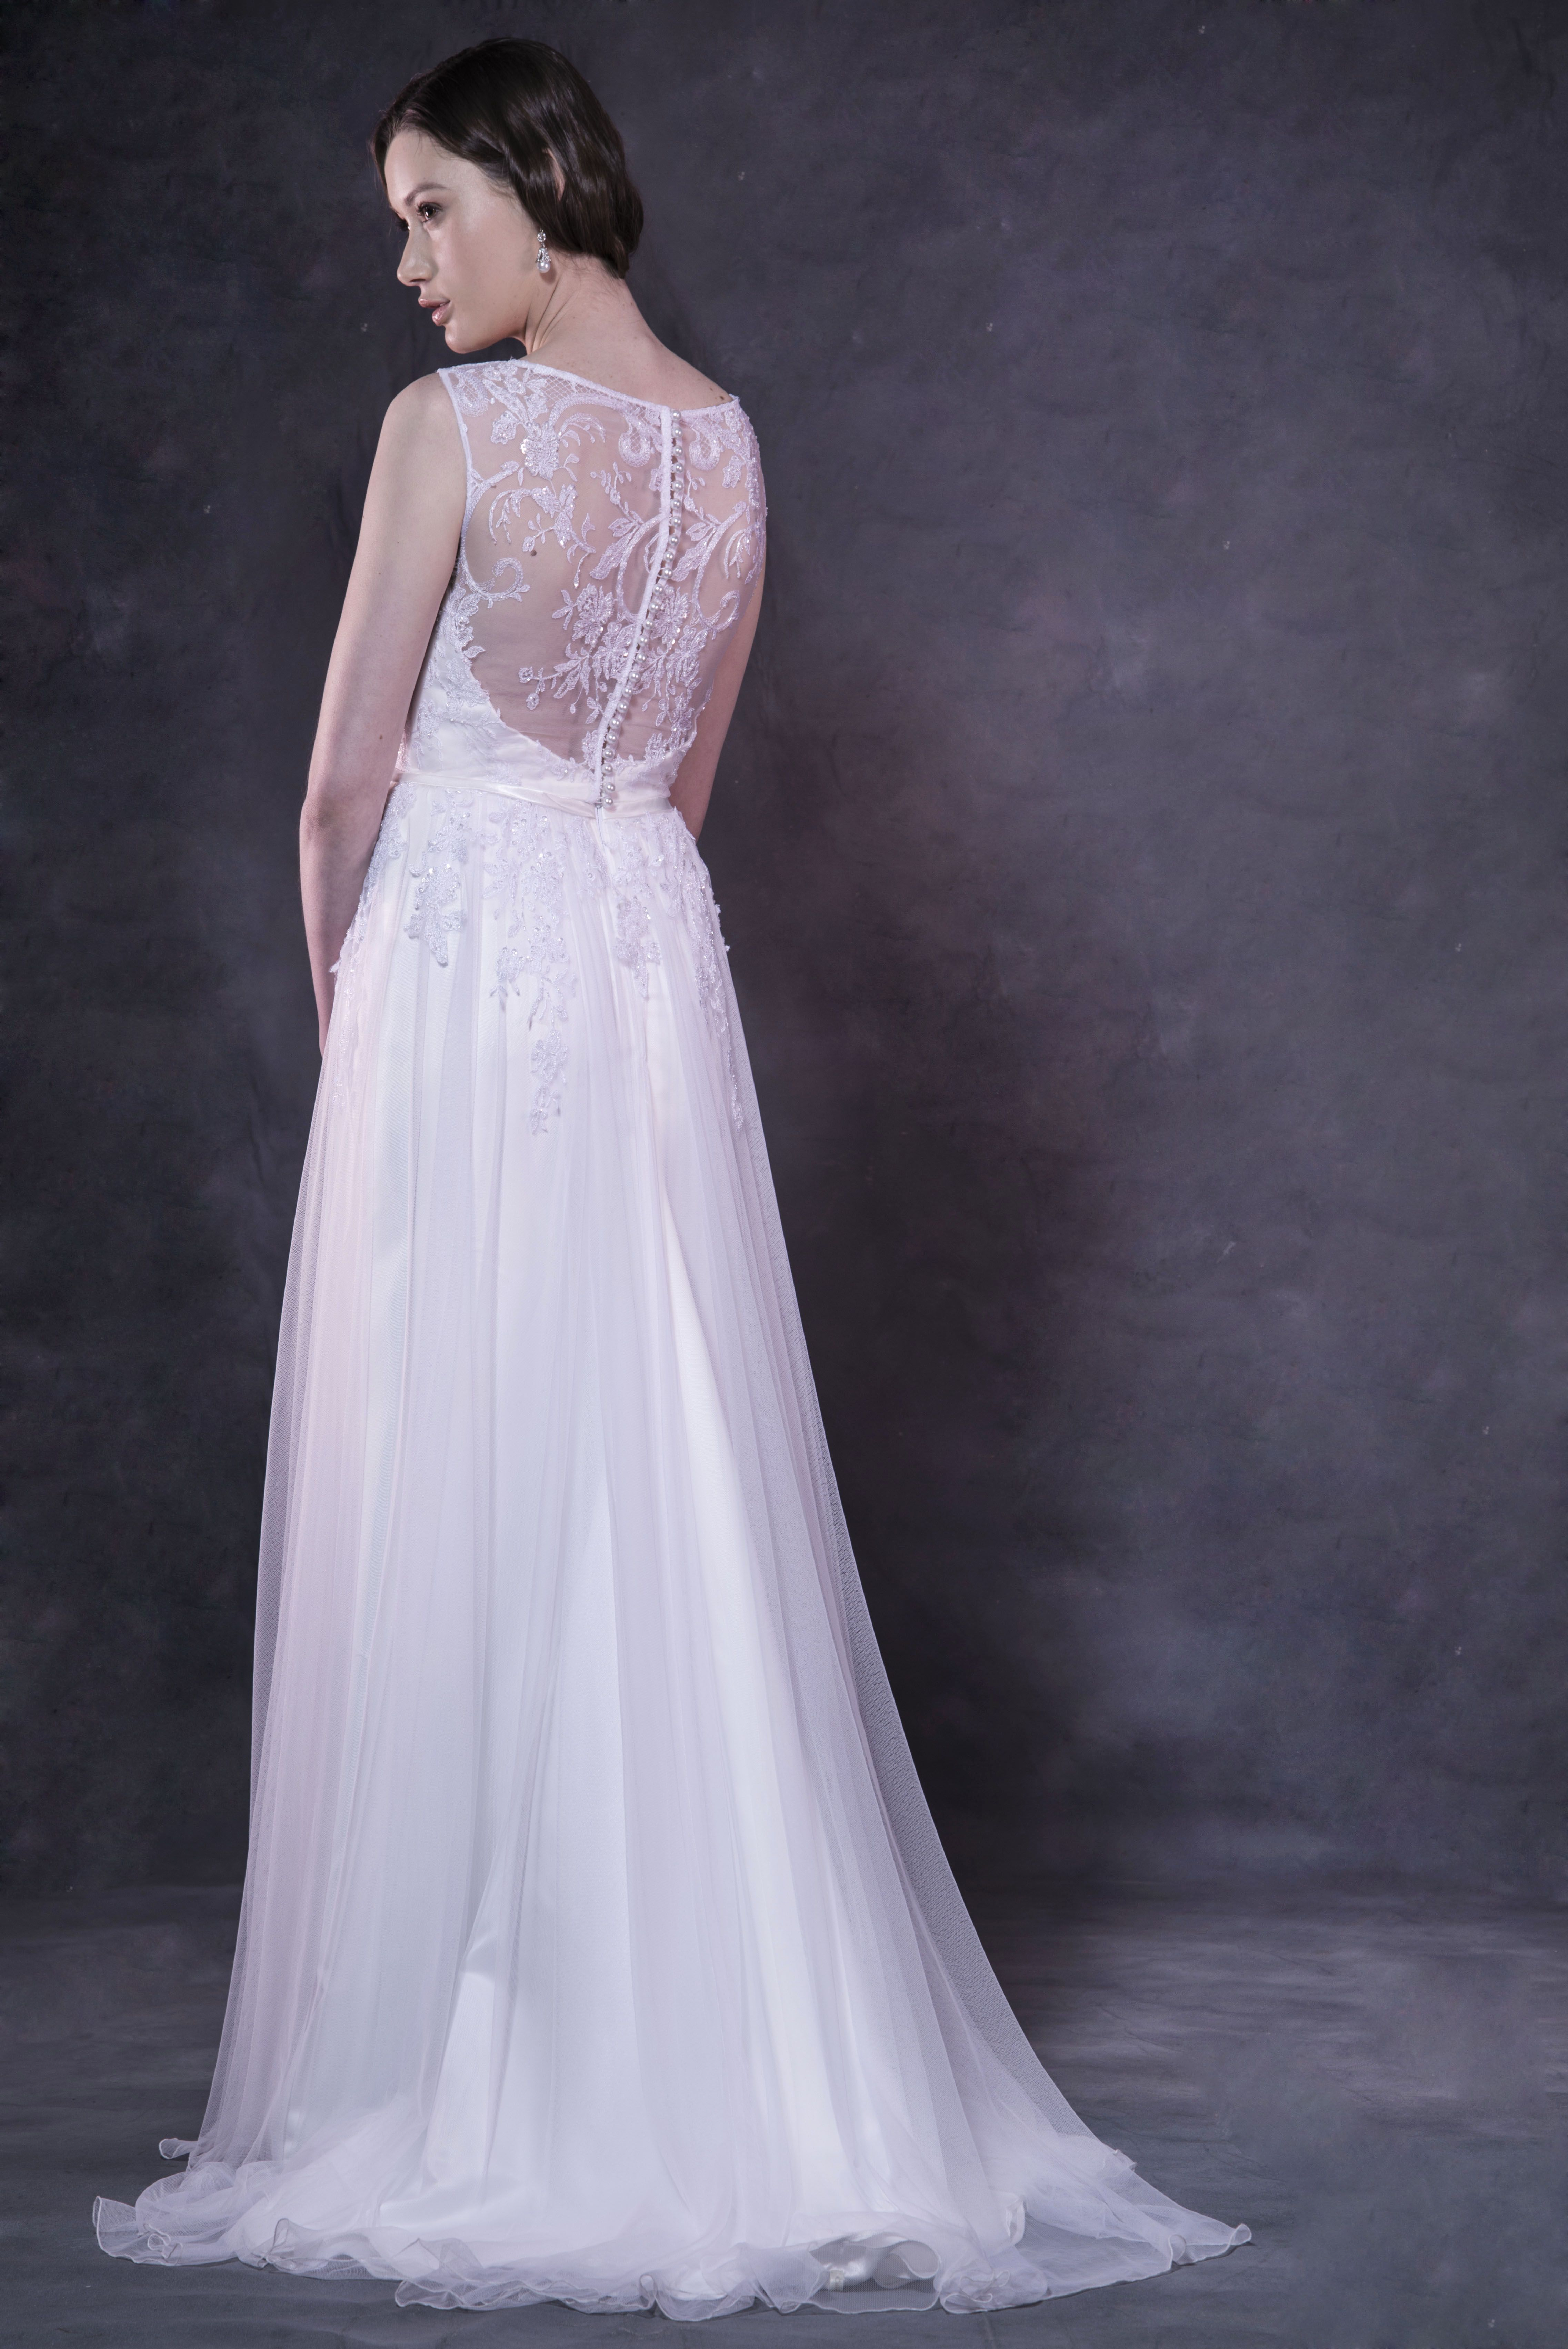 The \'Sally\' by Caleche Bridal gown has a very romantic feel with its ...